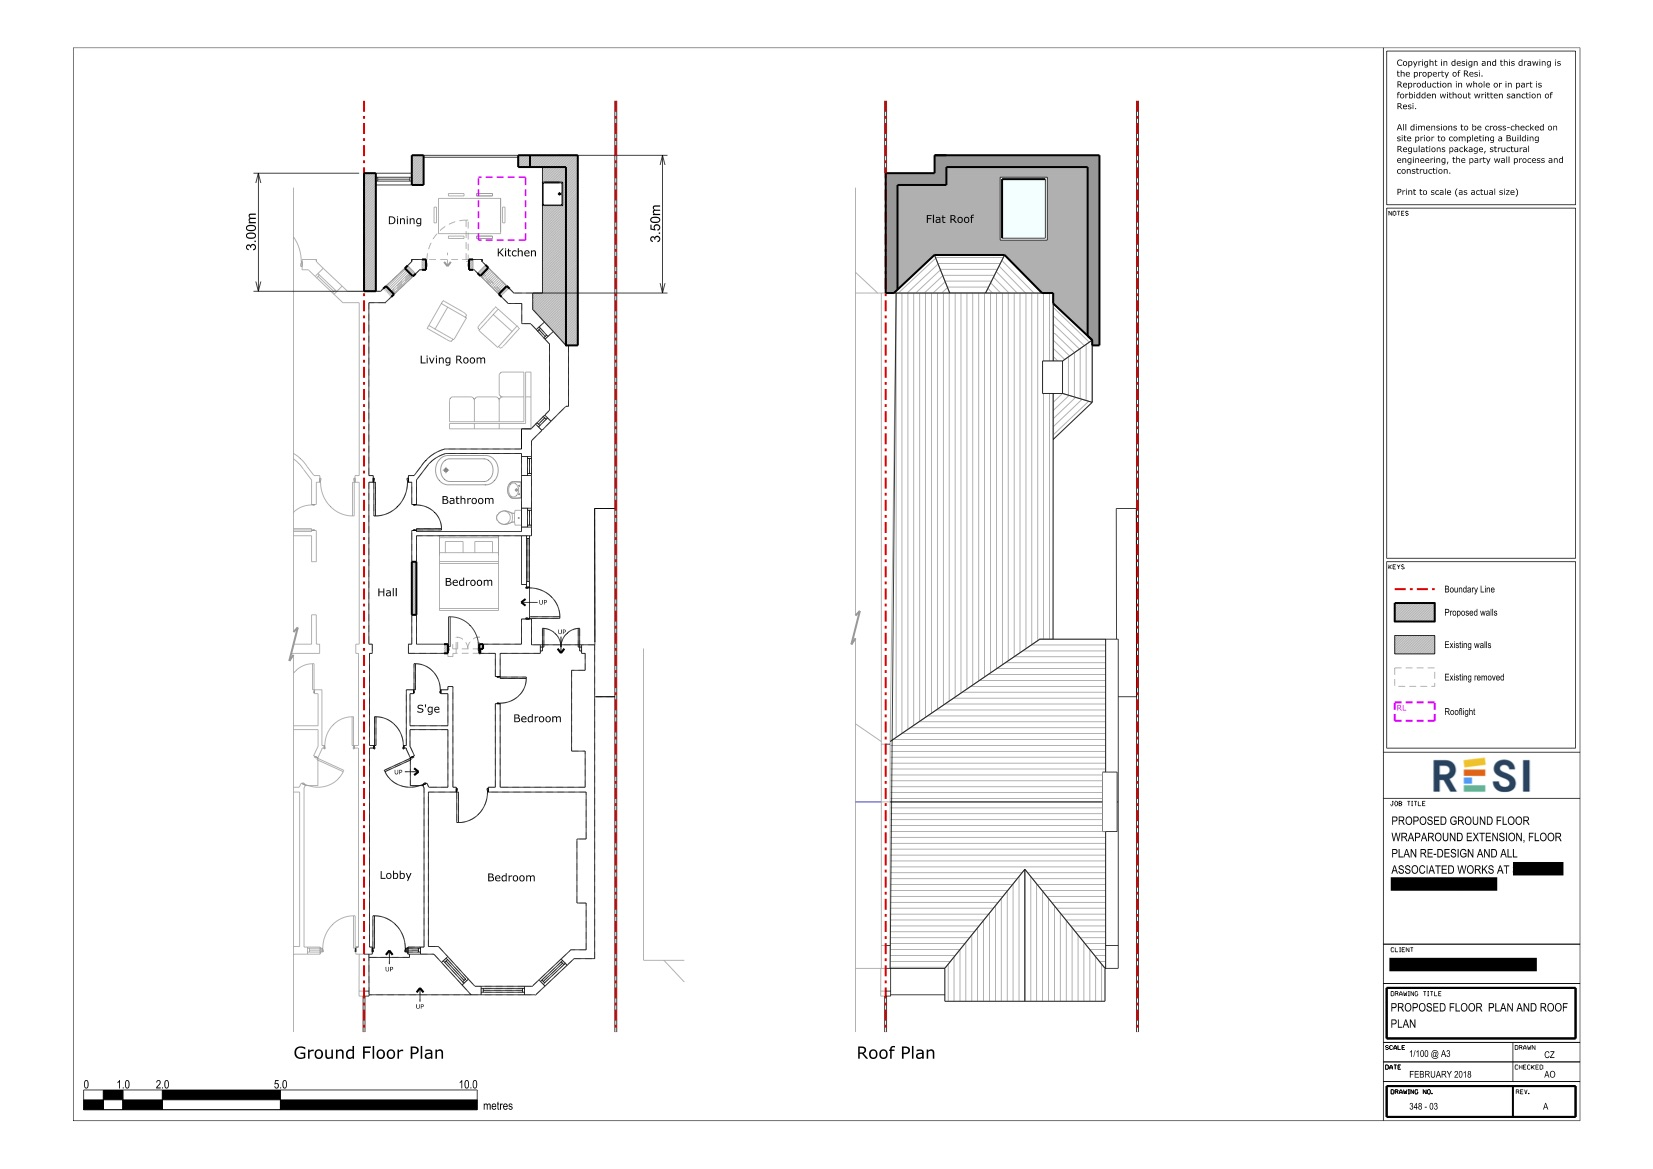 Architectural drawings   rev b   ground floor and roof plans